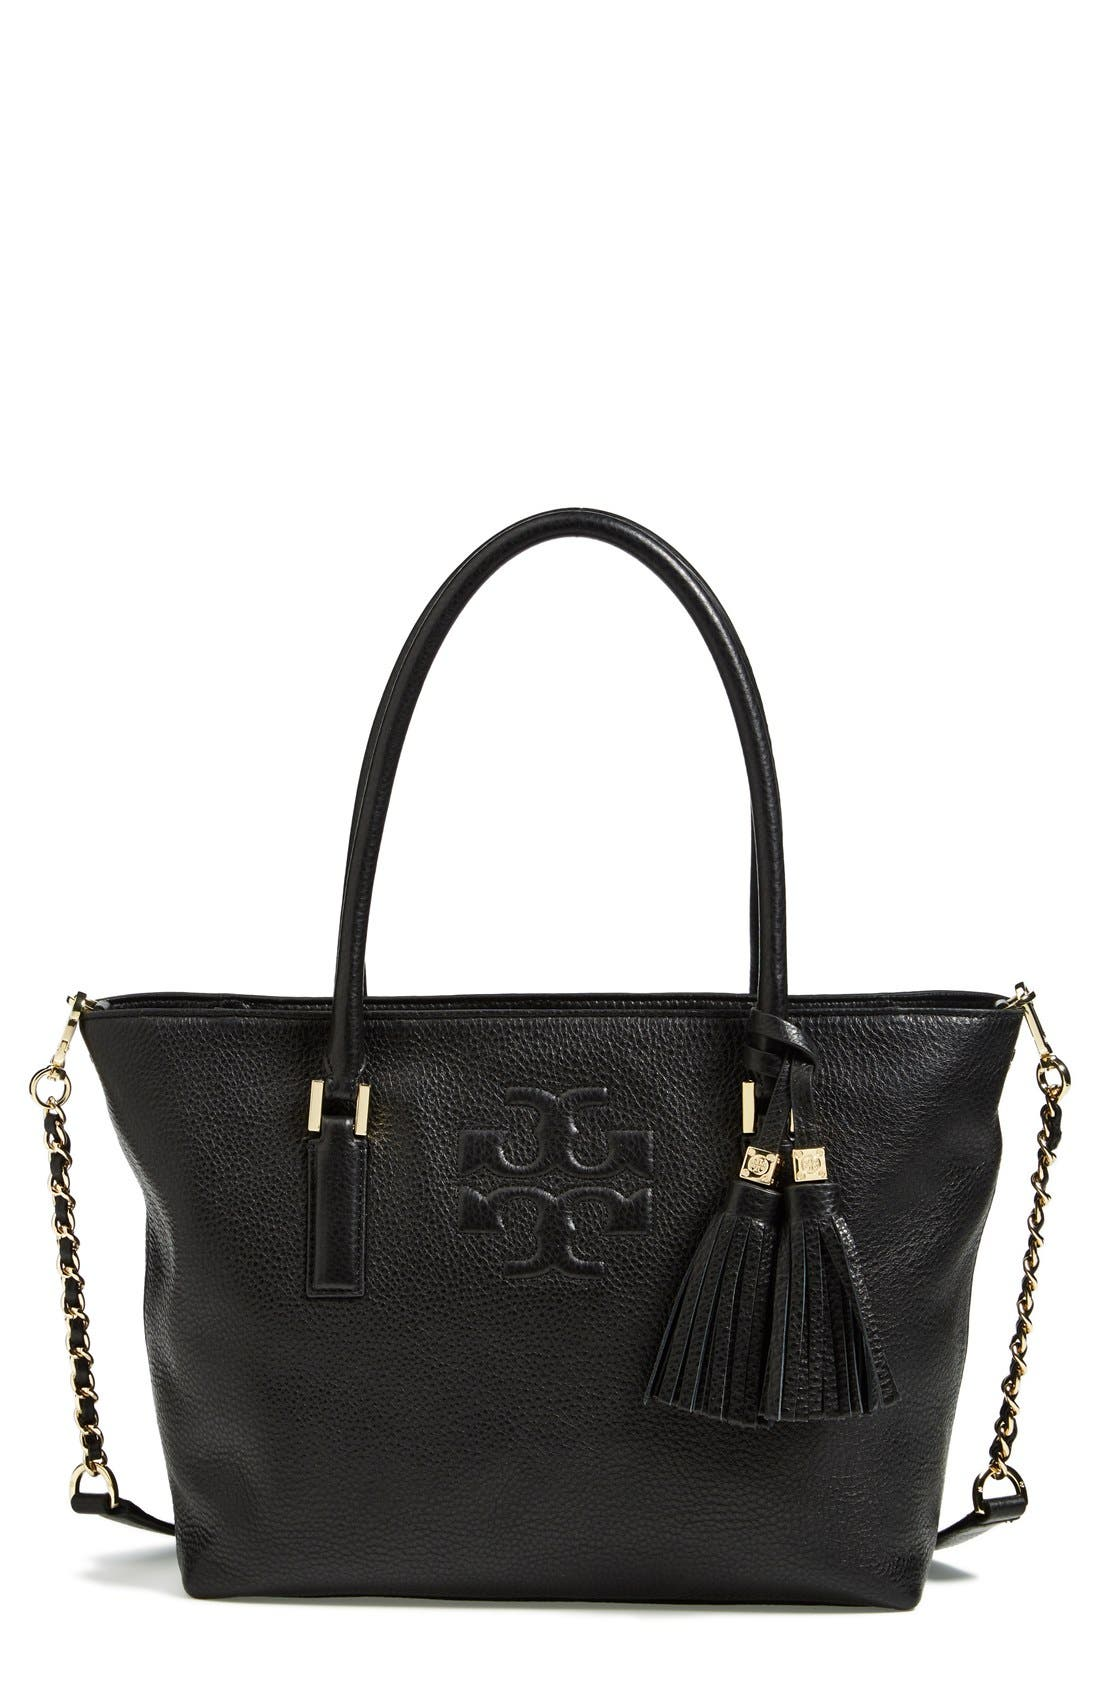 Alternate Image 1 Selected - Tory Burch 'Small Thea' Convertible Tote